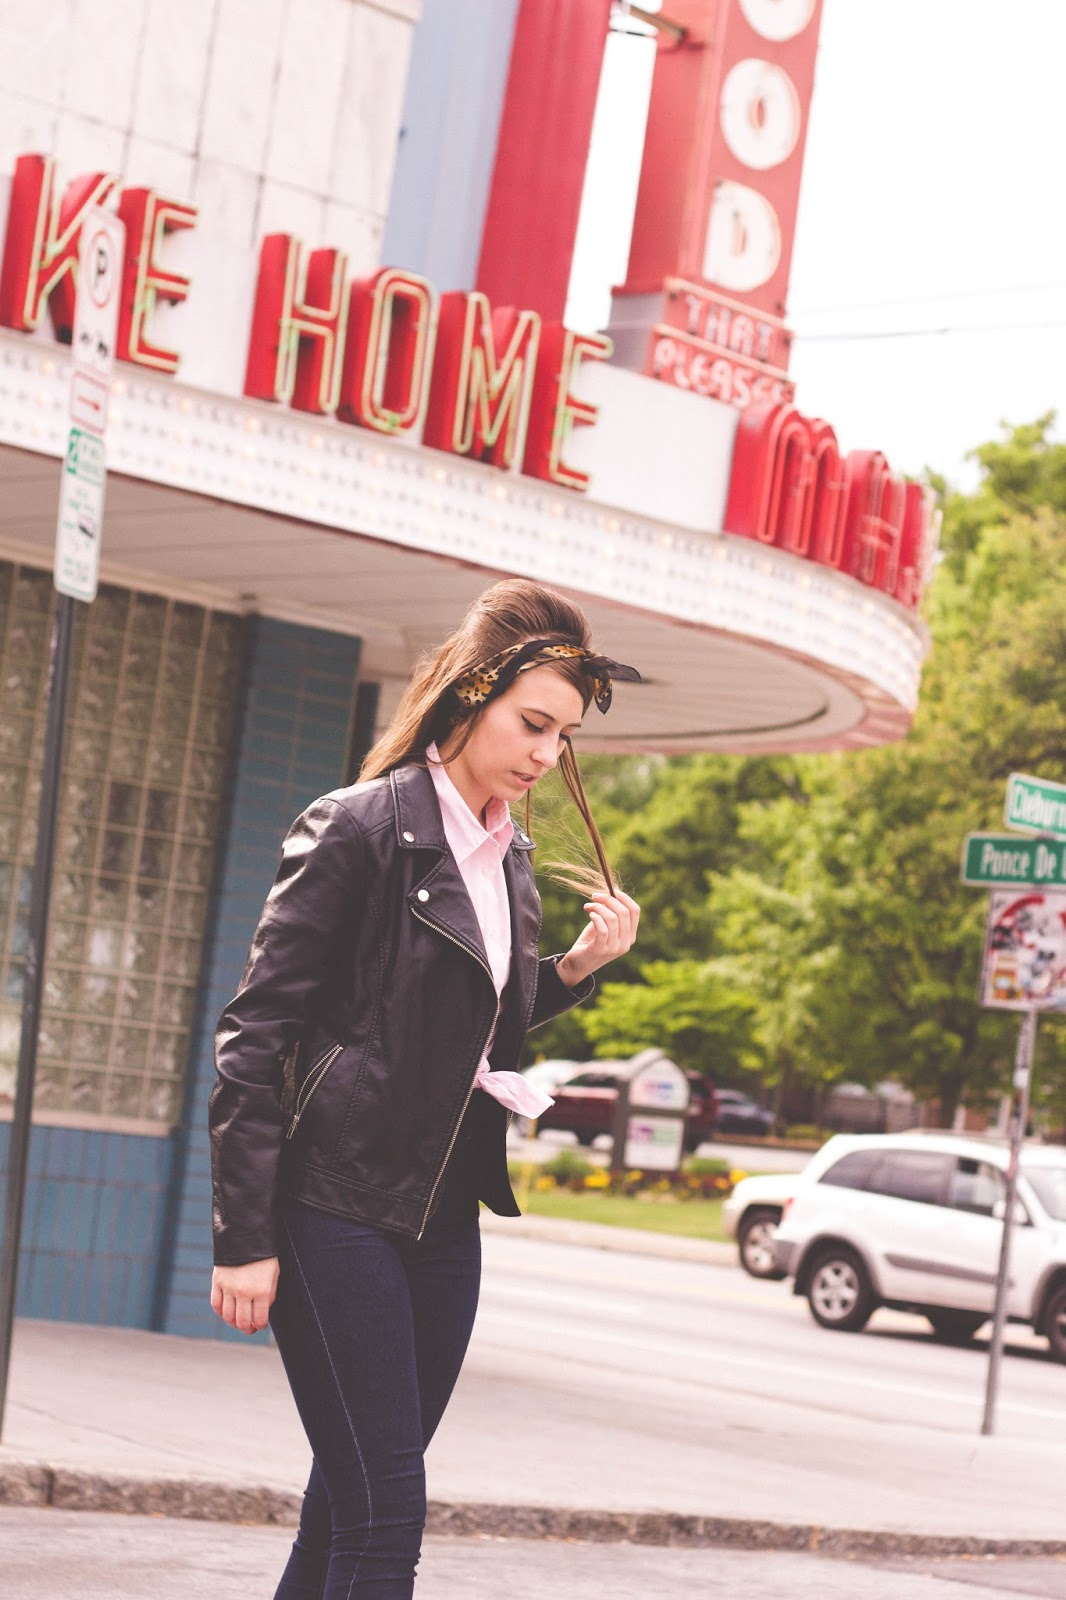 50's, style, rockabilly, retro, vintage, hipster, high waisted jeans, biker jacket, diner, fashion blogger, movie blogger, costume design, greaser, modern greaser, converse, style blog, vintage photography, teen vogue blogger, it girl